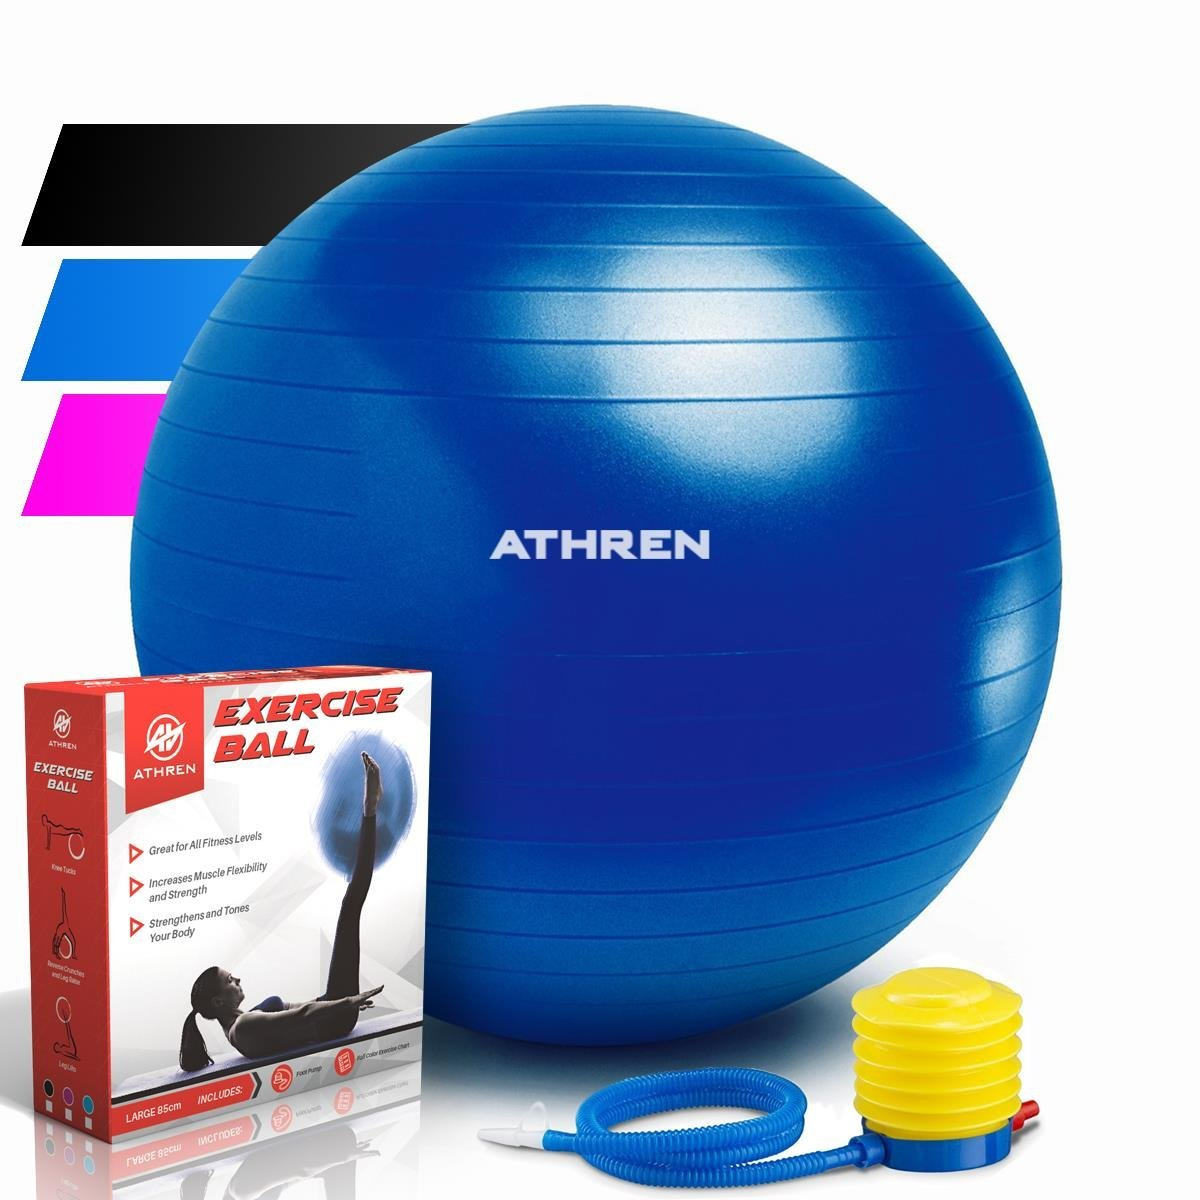 Extra Thick exercise ball